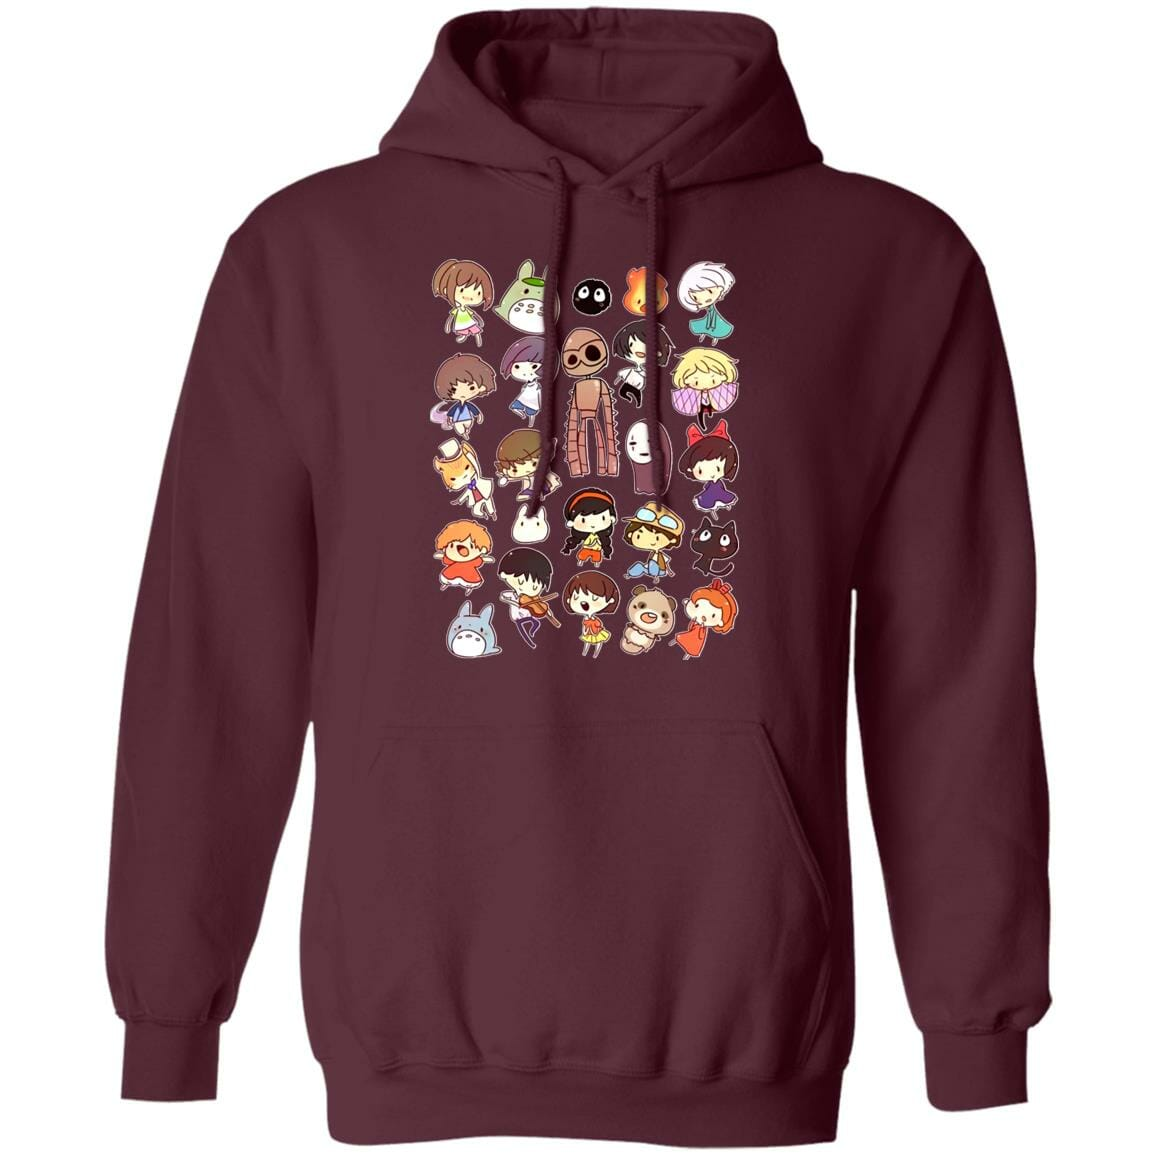 Ghibli Movie Characters Cute Chibi Collection Hoodie